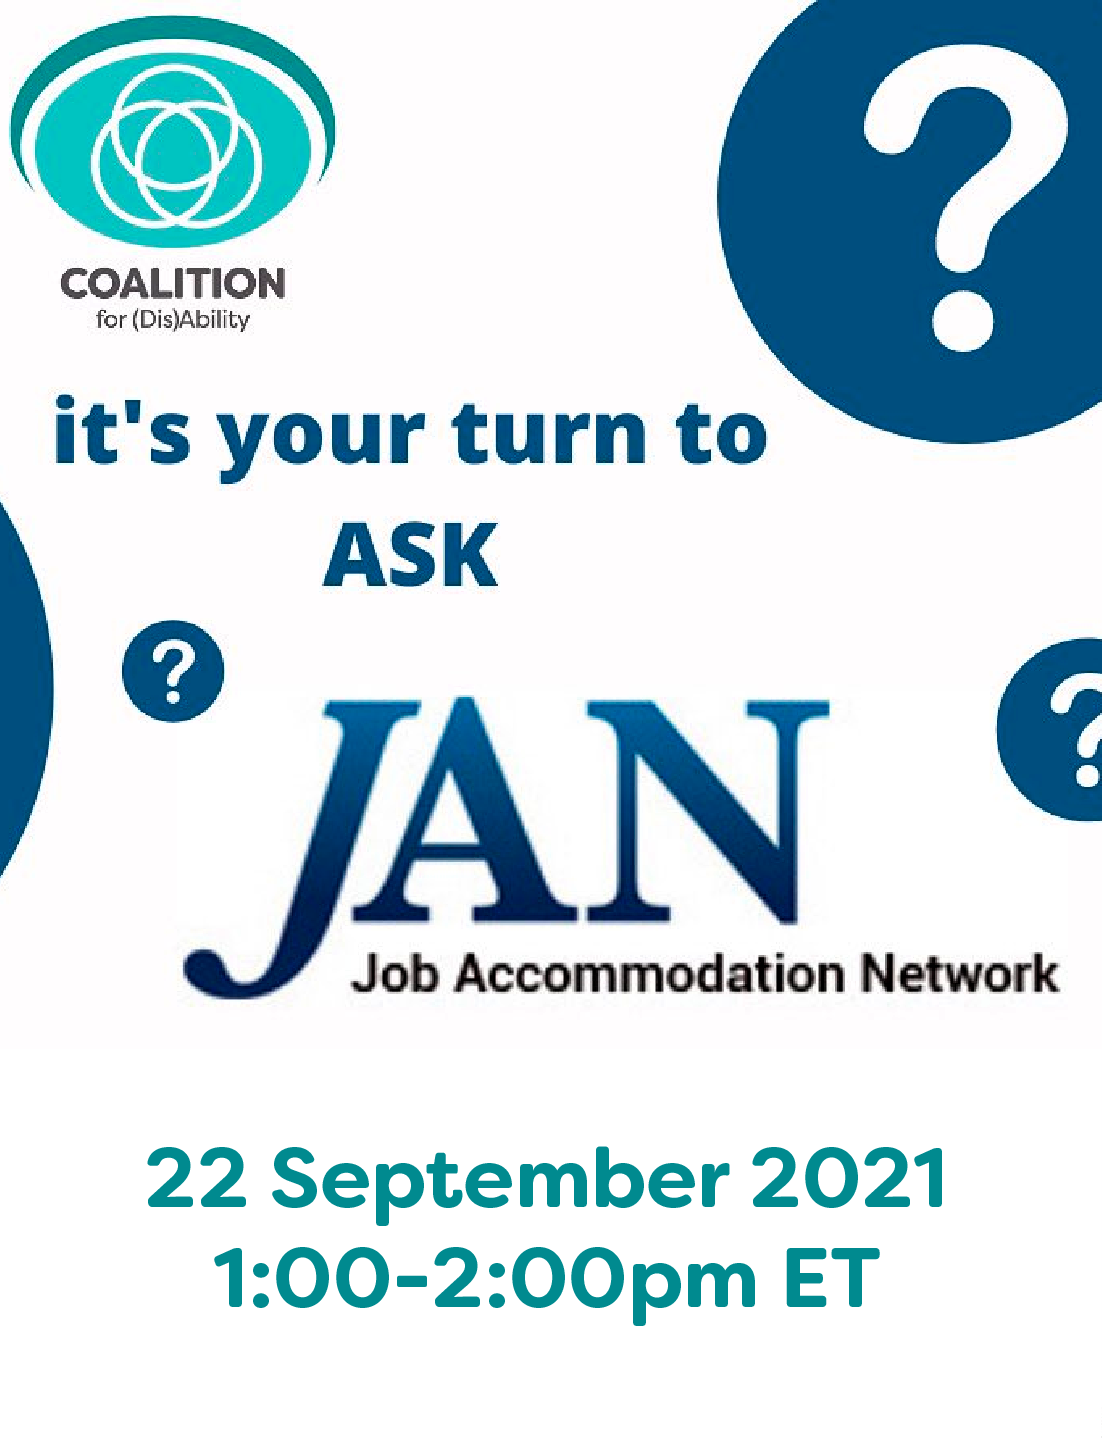 its your turn to ASK JAN Job Accomodation Network. 22 September 2021 1:00-2:00pm ET